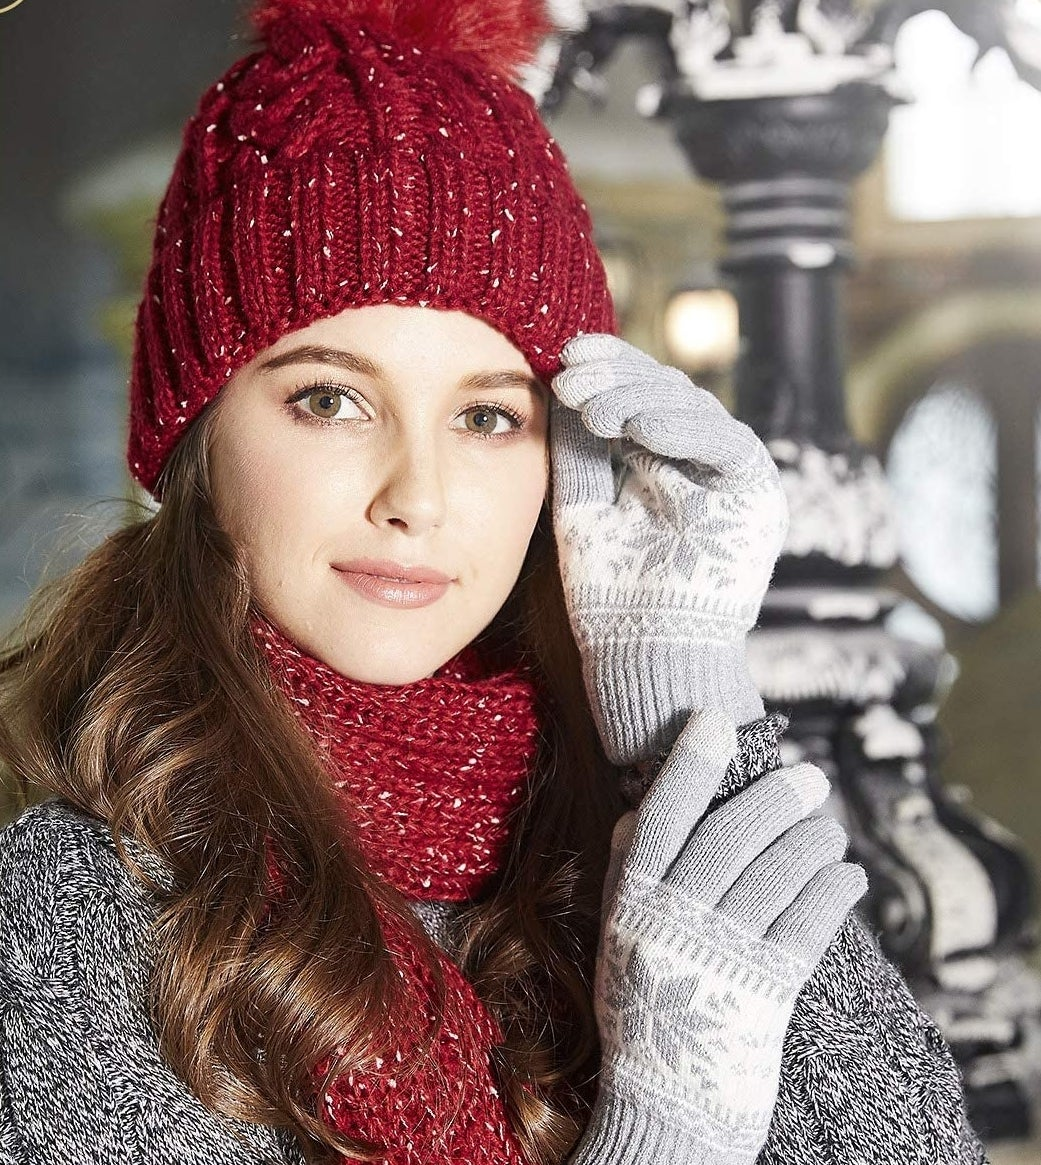 A person wearing a knit hat, scarf, and gloves